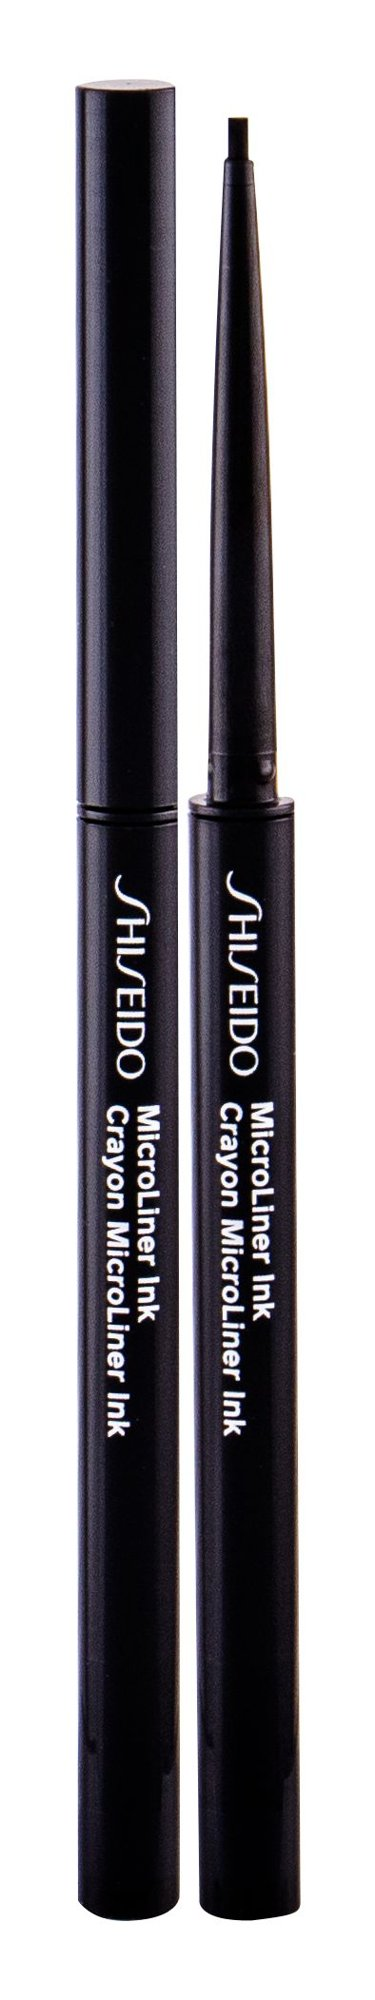 Shiseido MicroLiner Ink Eye Pencil 0,08ml 01 Black